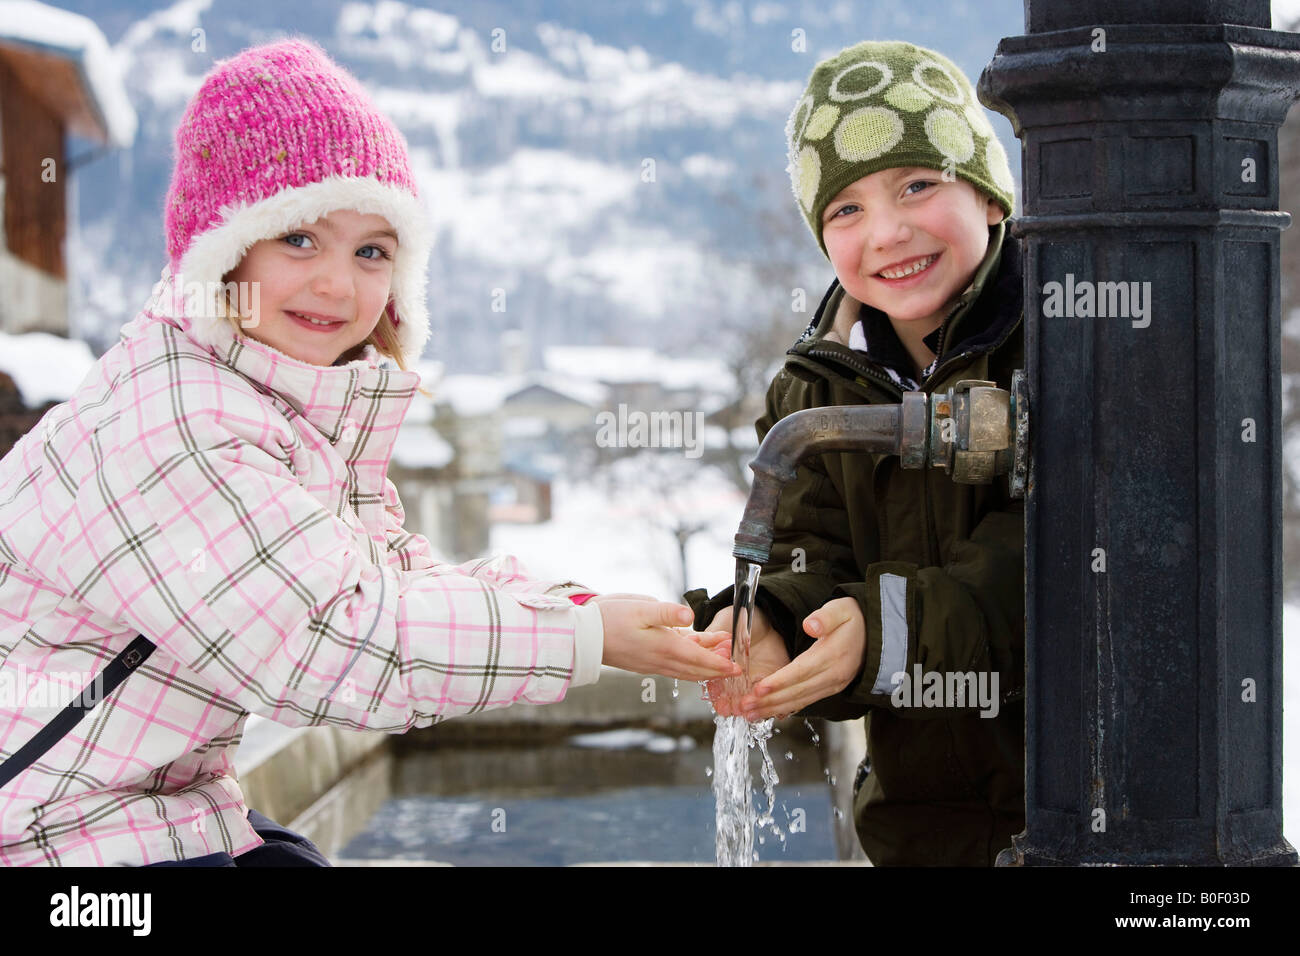 Boy and girl holding hands under tap - Stock Image